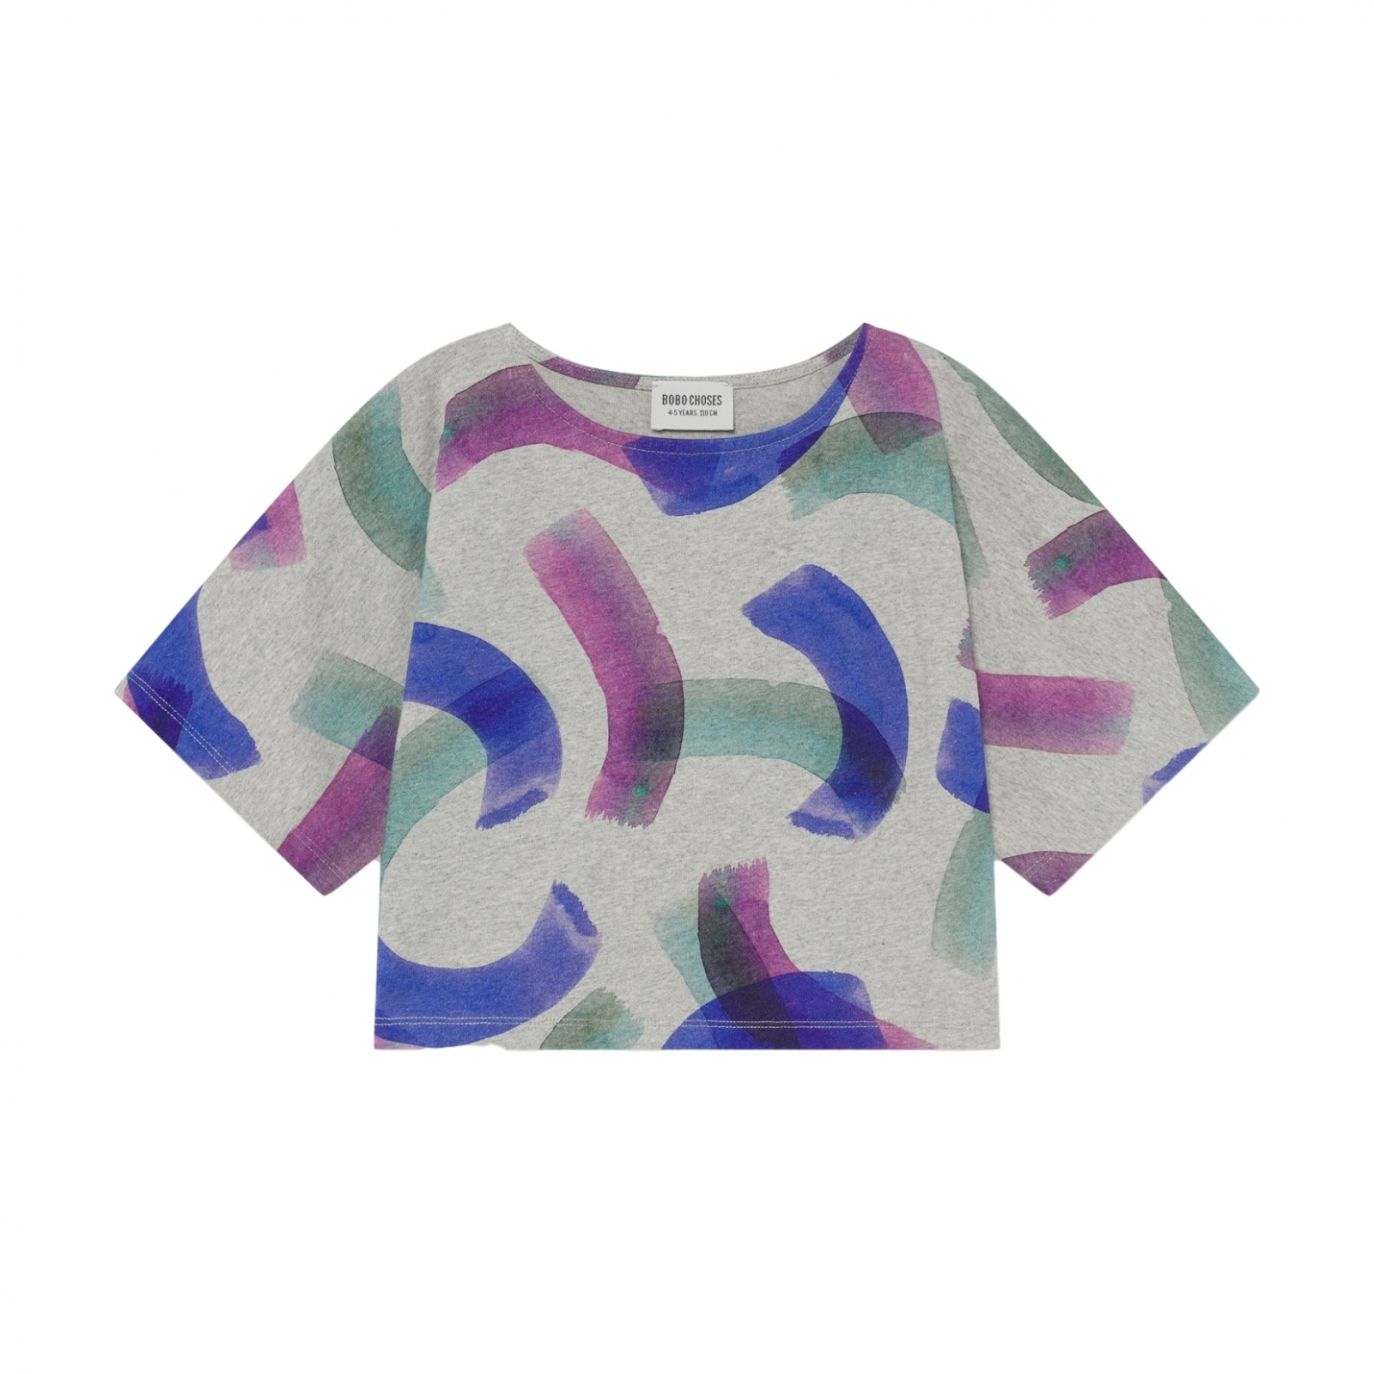 Bobo Choses - All Over Painted T-shirt Grey - 1